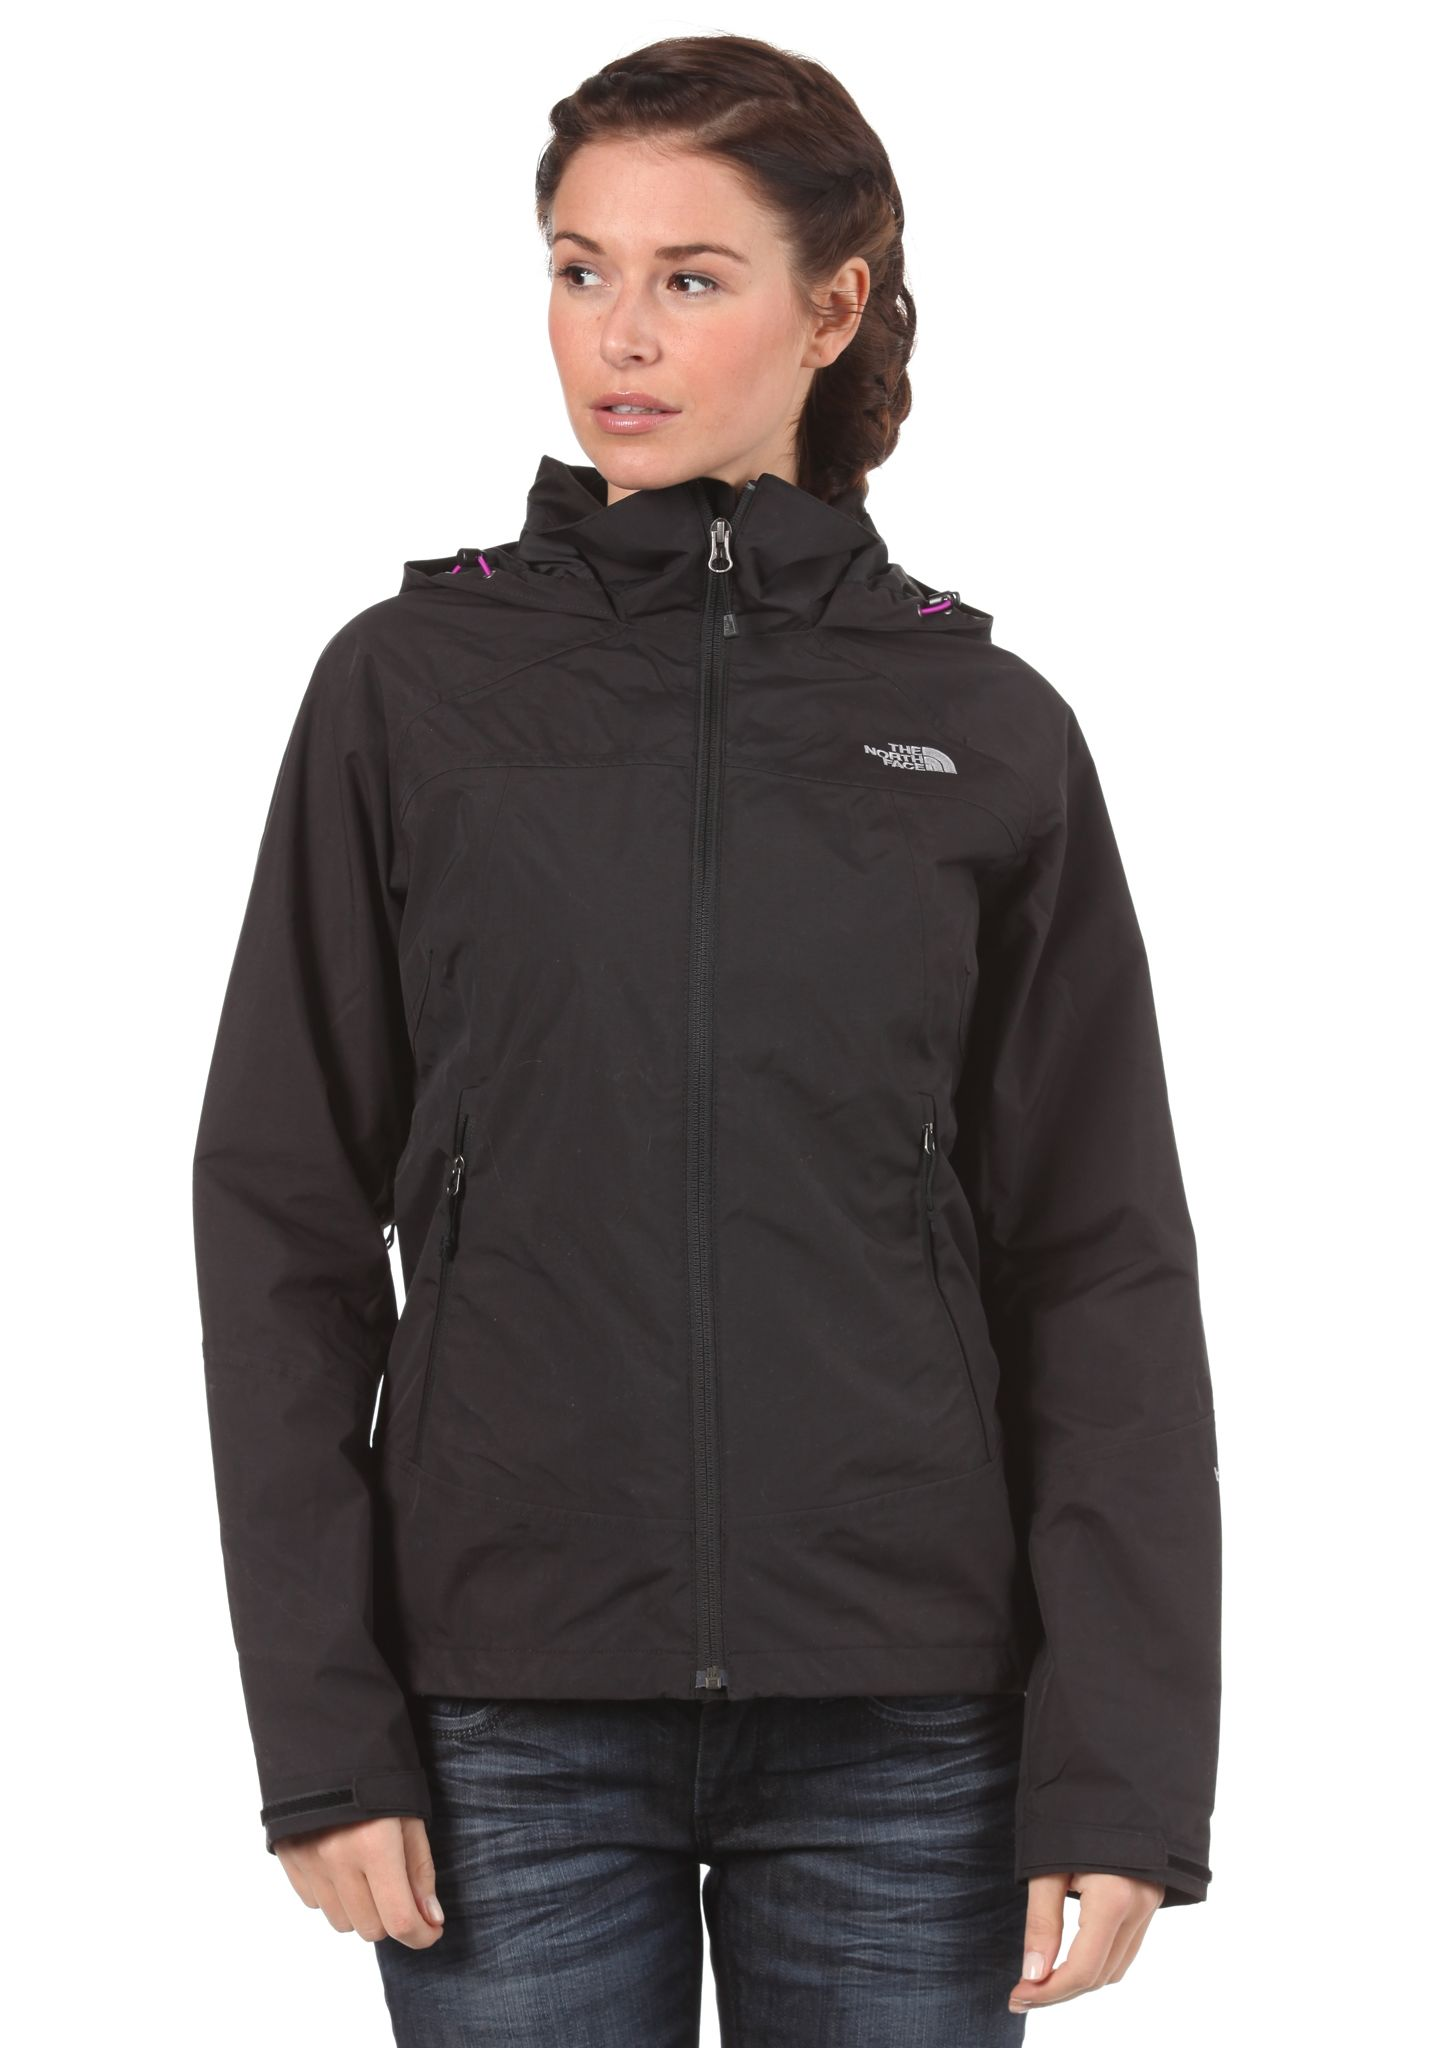 c96f3dccc316 THE NORTH FACE StraTos Jacket - Functional Jacket for Women - Black - Planet  Sports